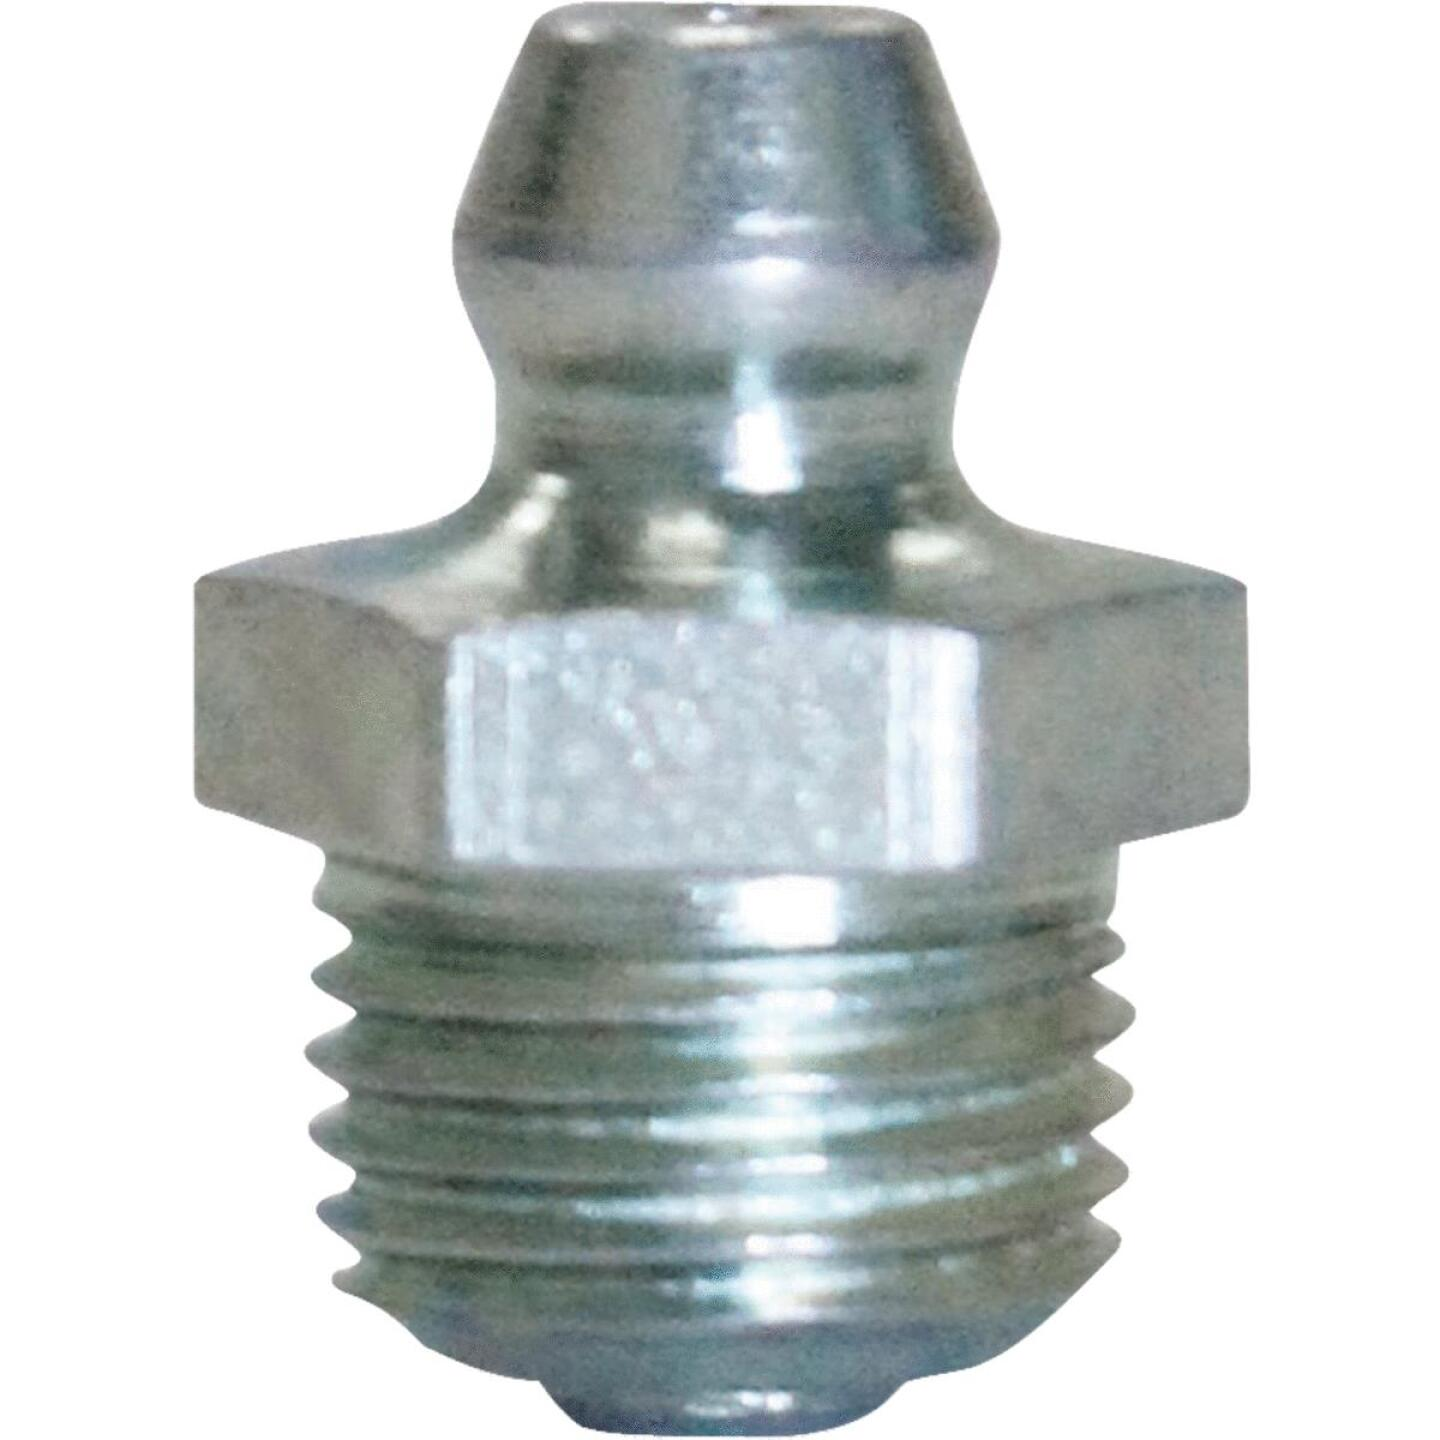 """Plews Lubrimatic Straight, Short 1/8"""" Grease Fitting Image 1"""